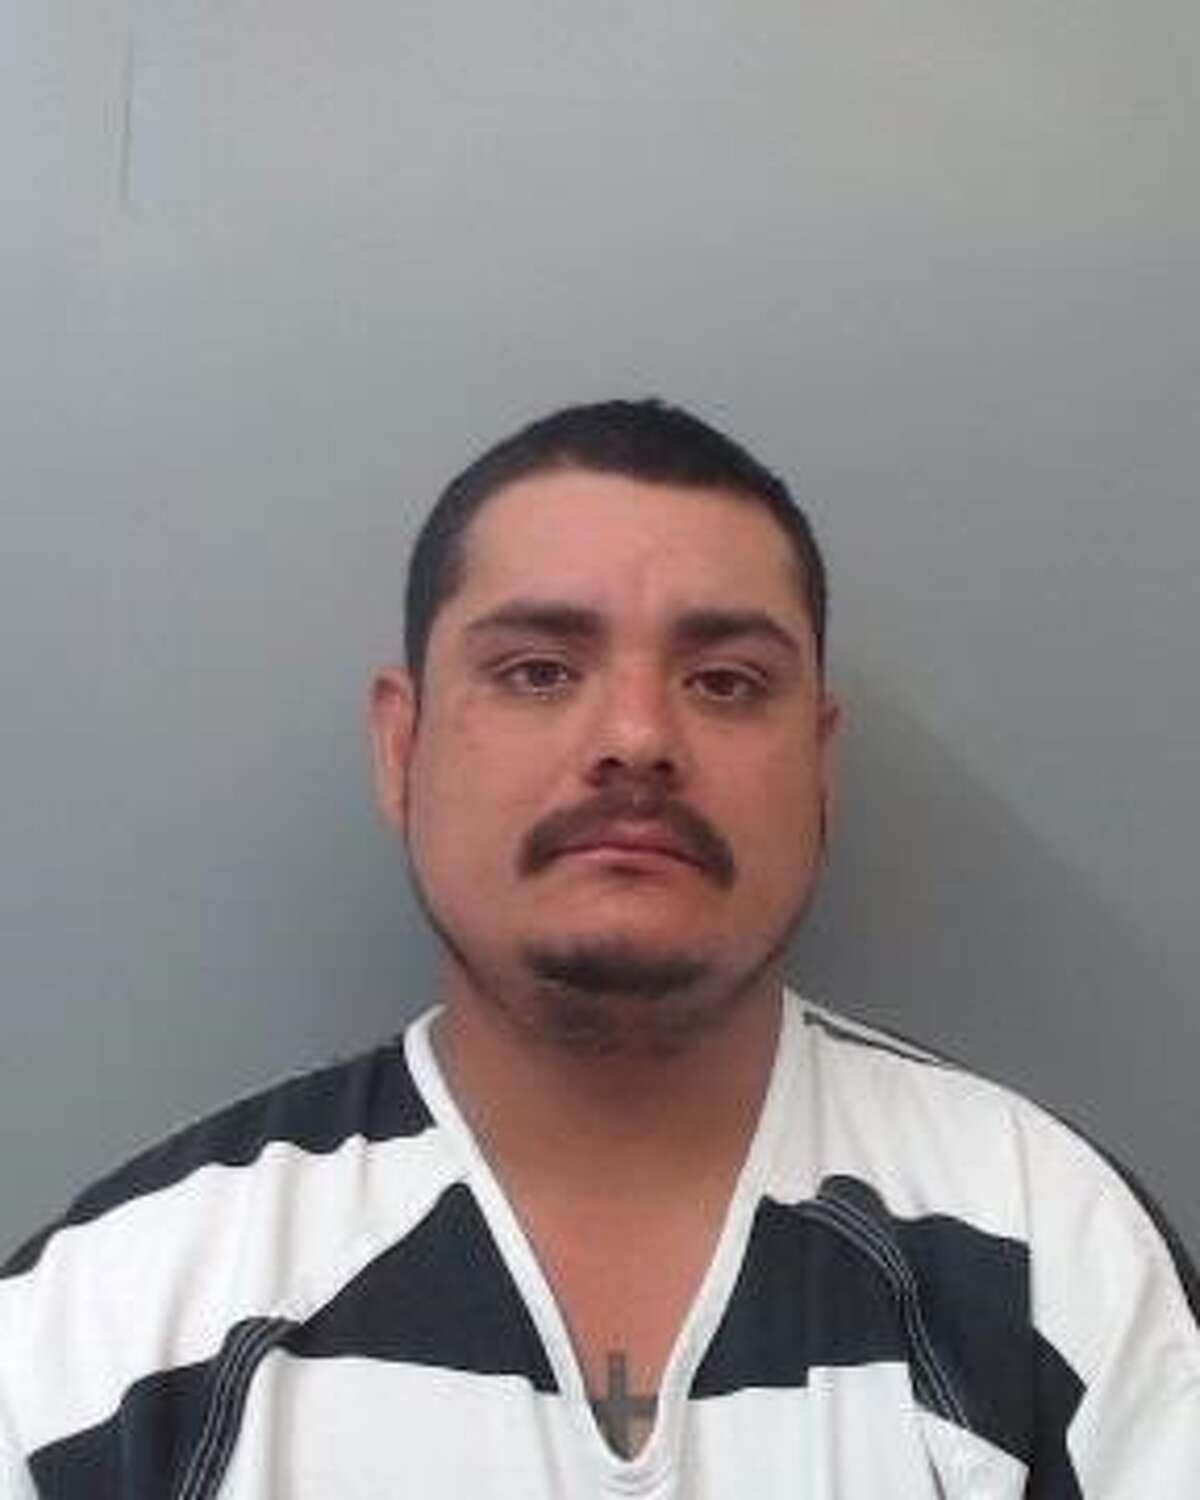 Pablo Antonio Lopez, 31, was charged with driving while intoxicated.